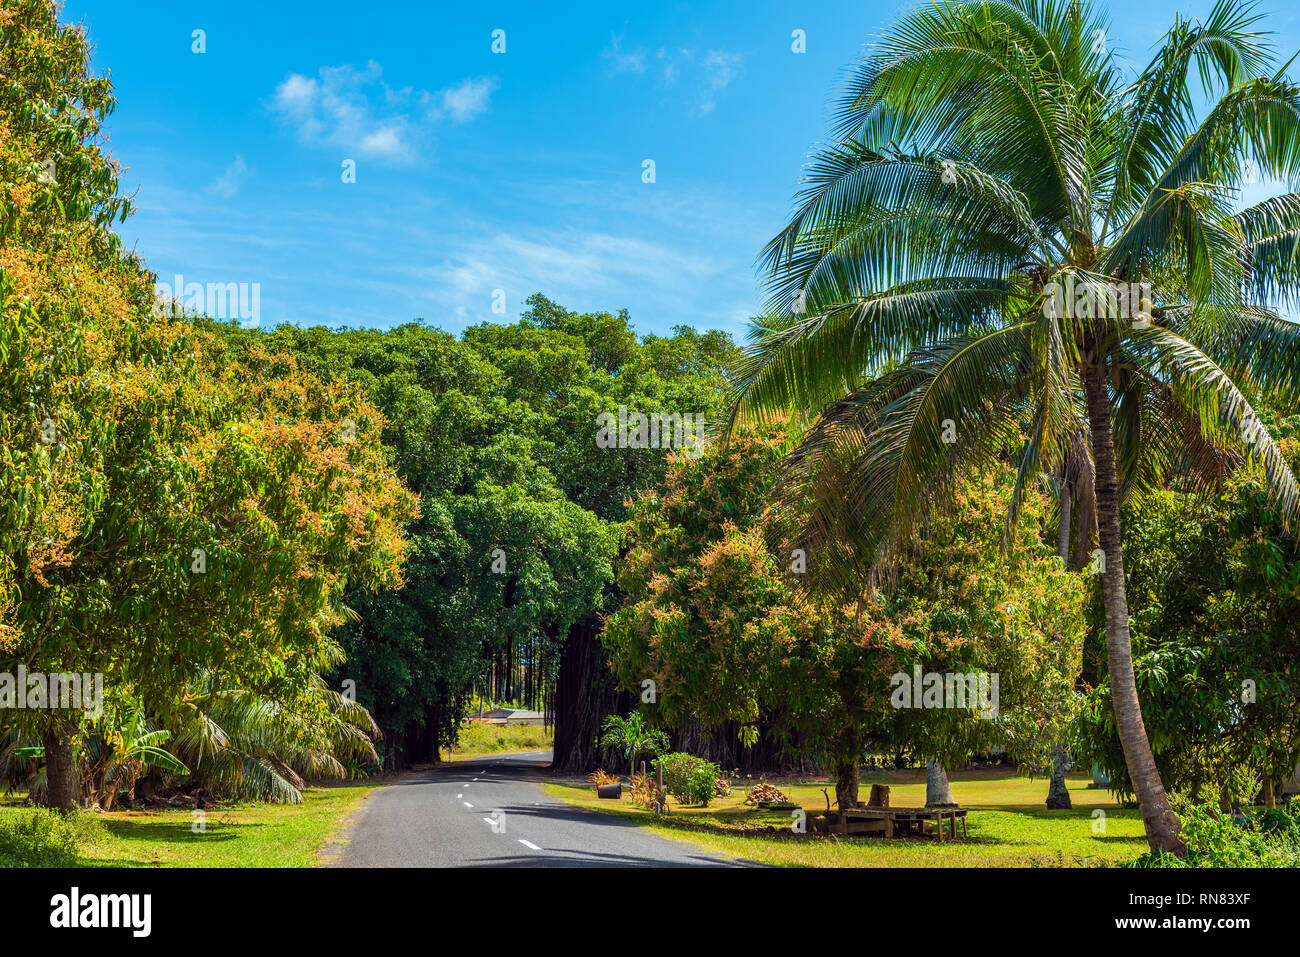 View of the road through the trees and creepers, Aitutaki Island, Cook Islands - Stock Image